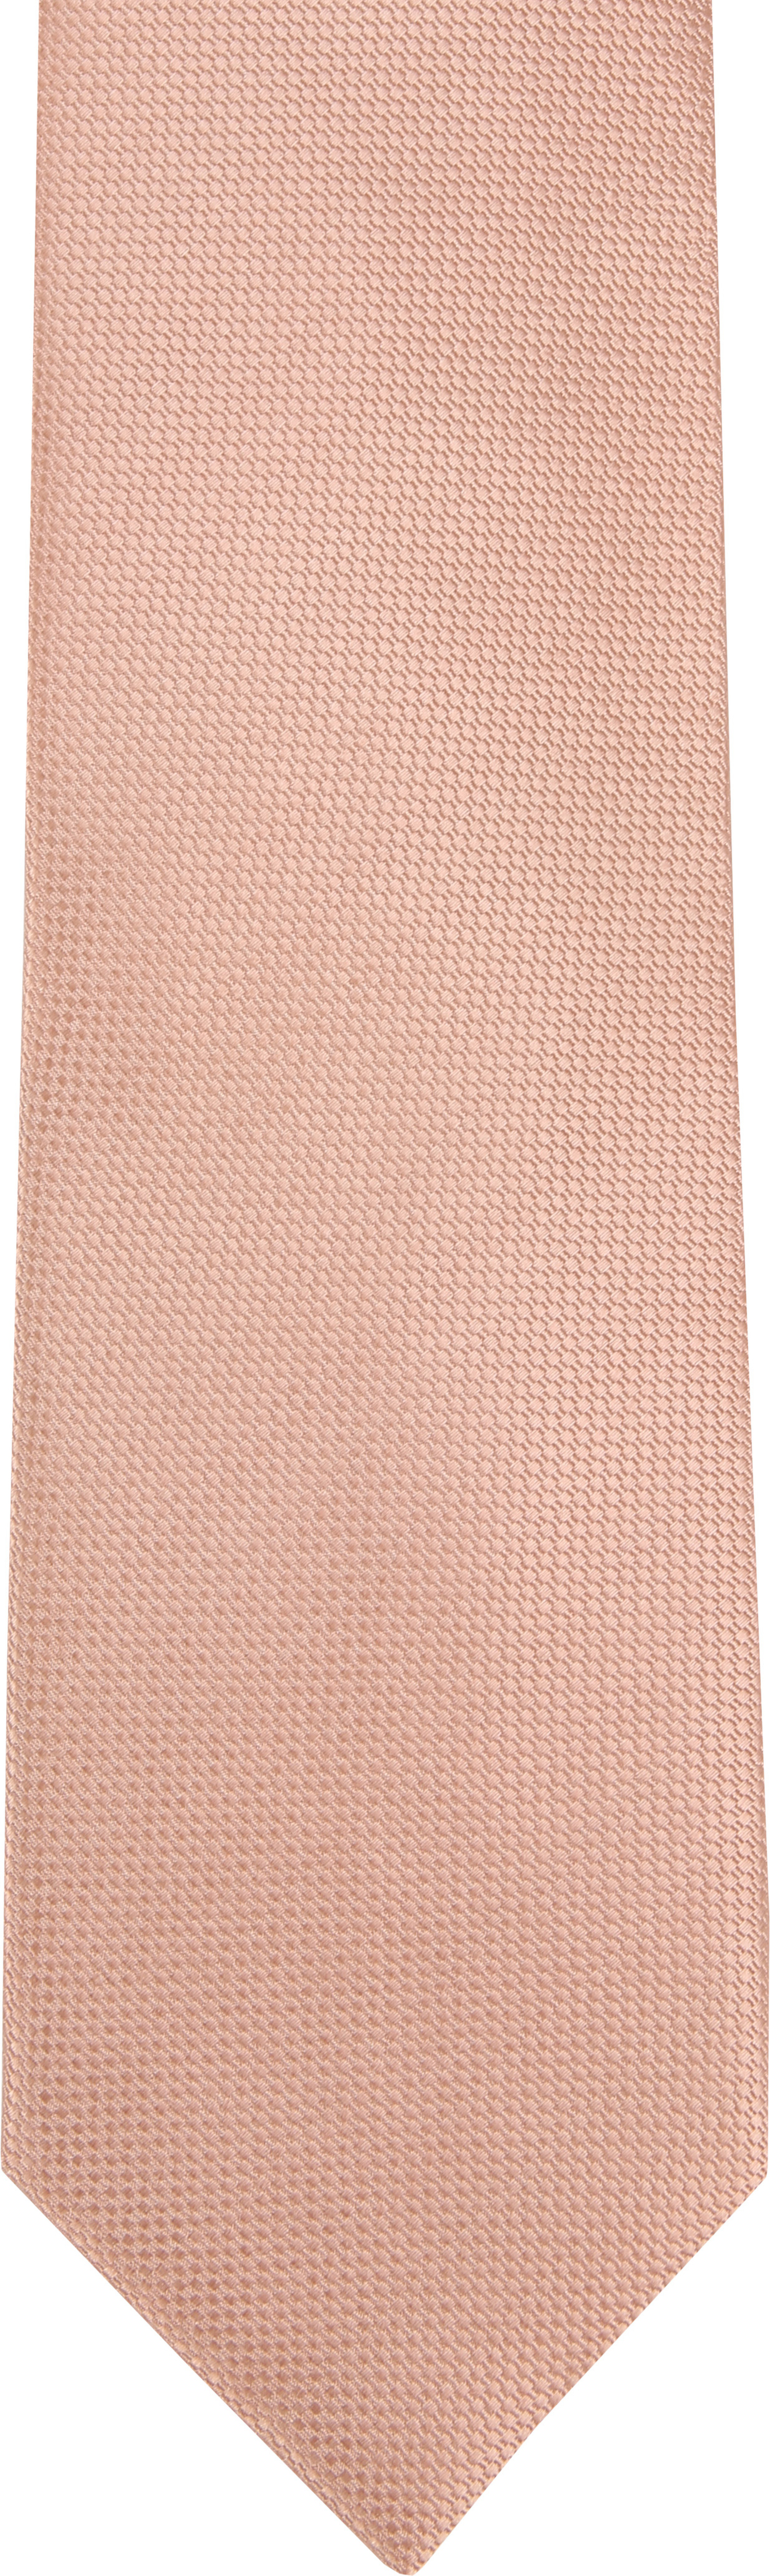 Suitable Tie Silk Pink 16 foto 1